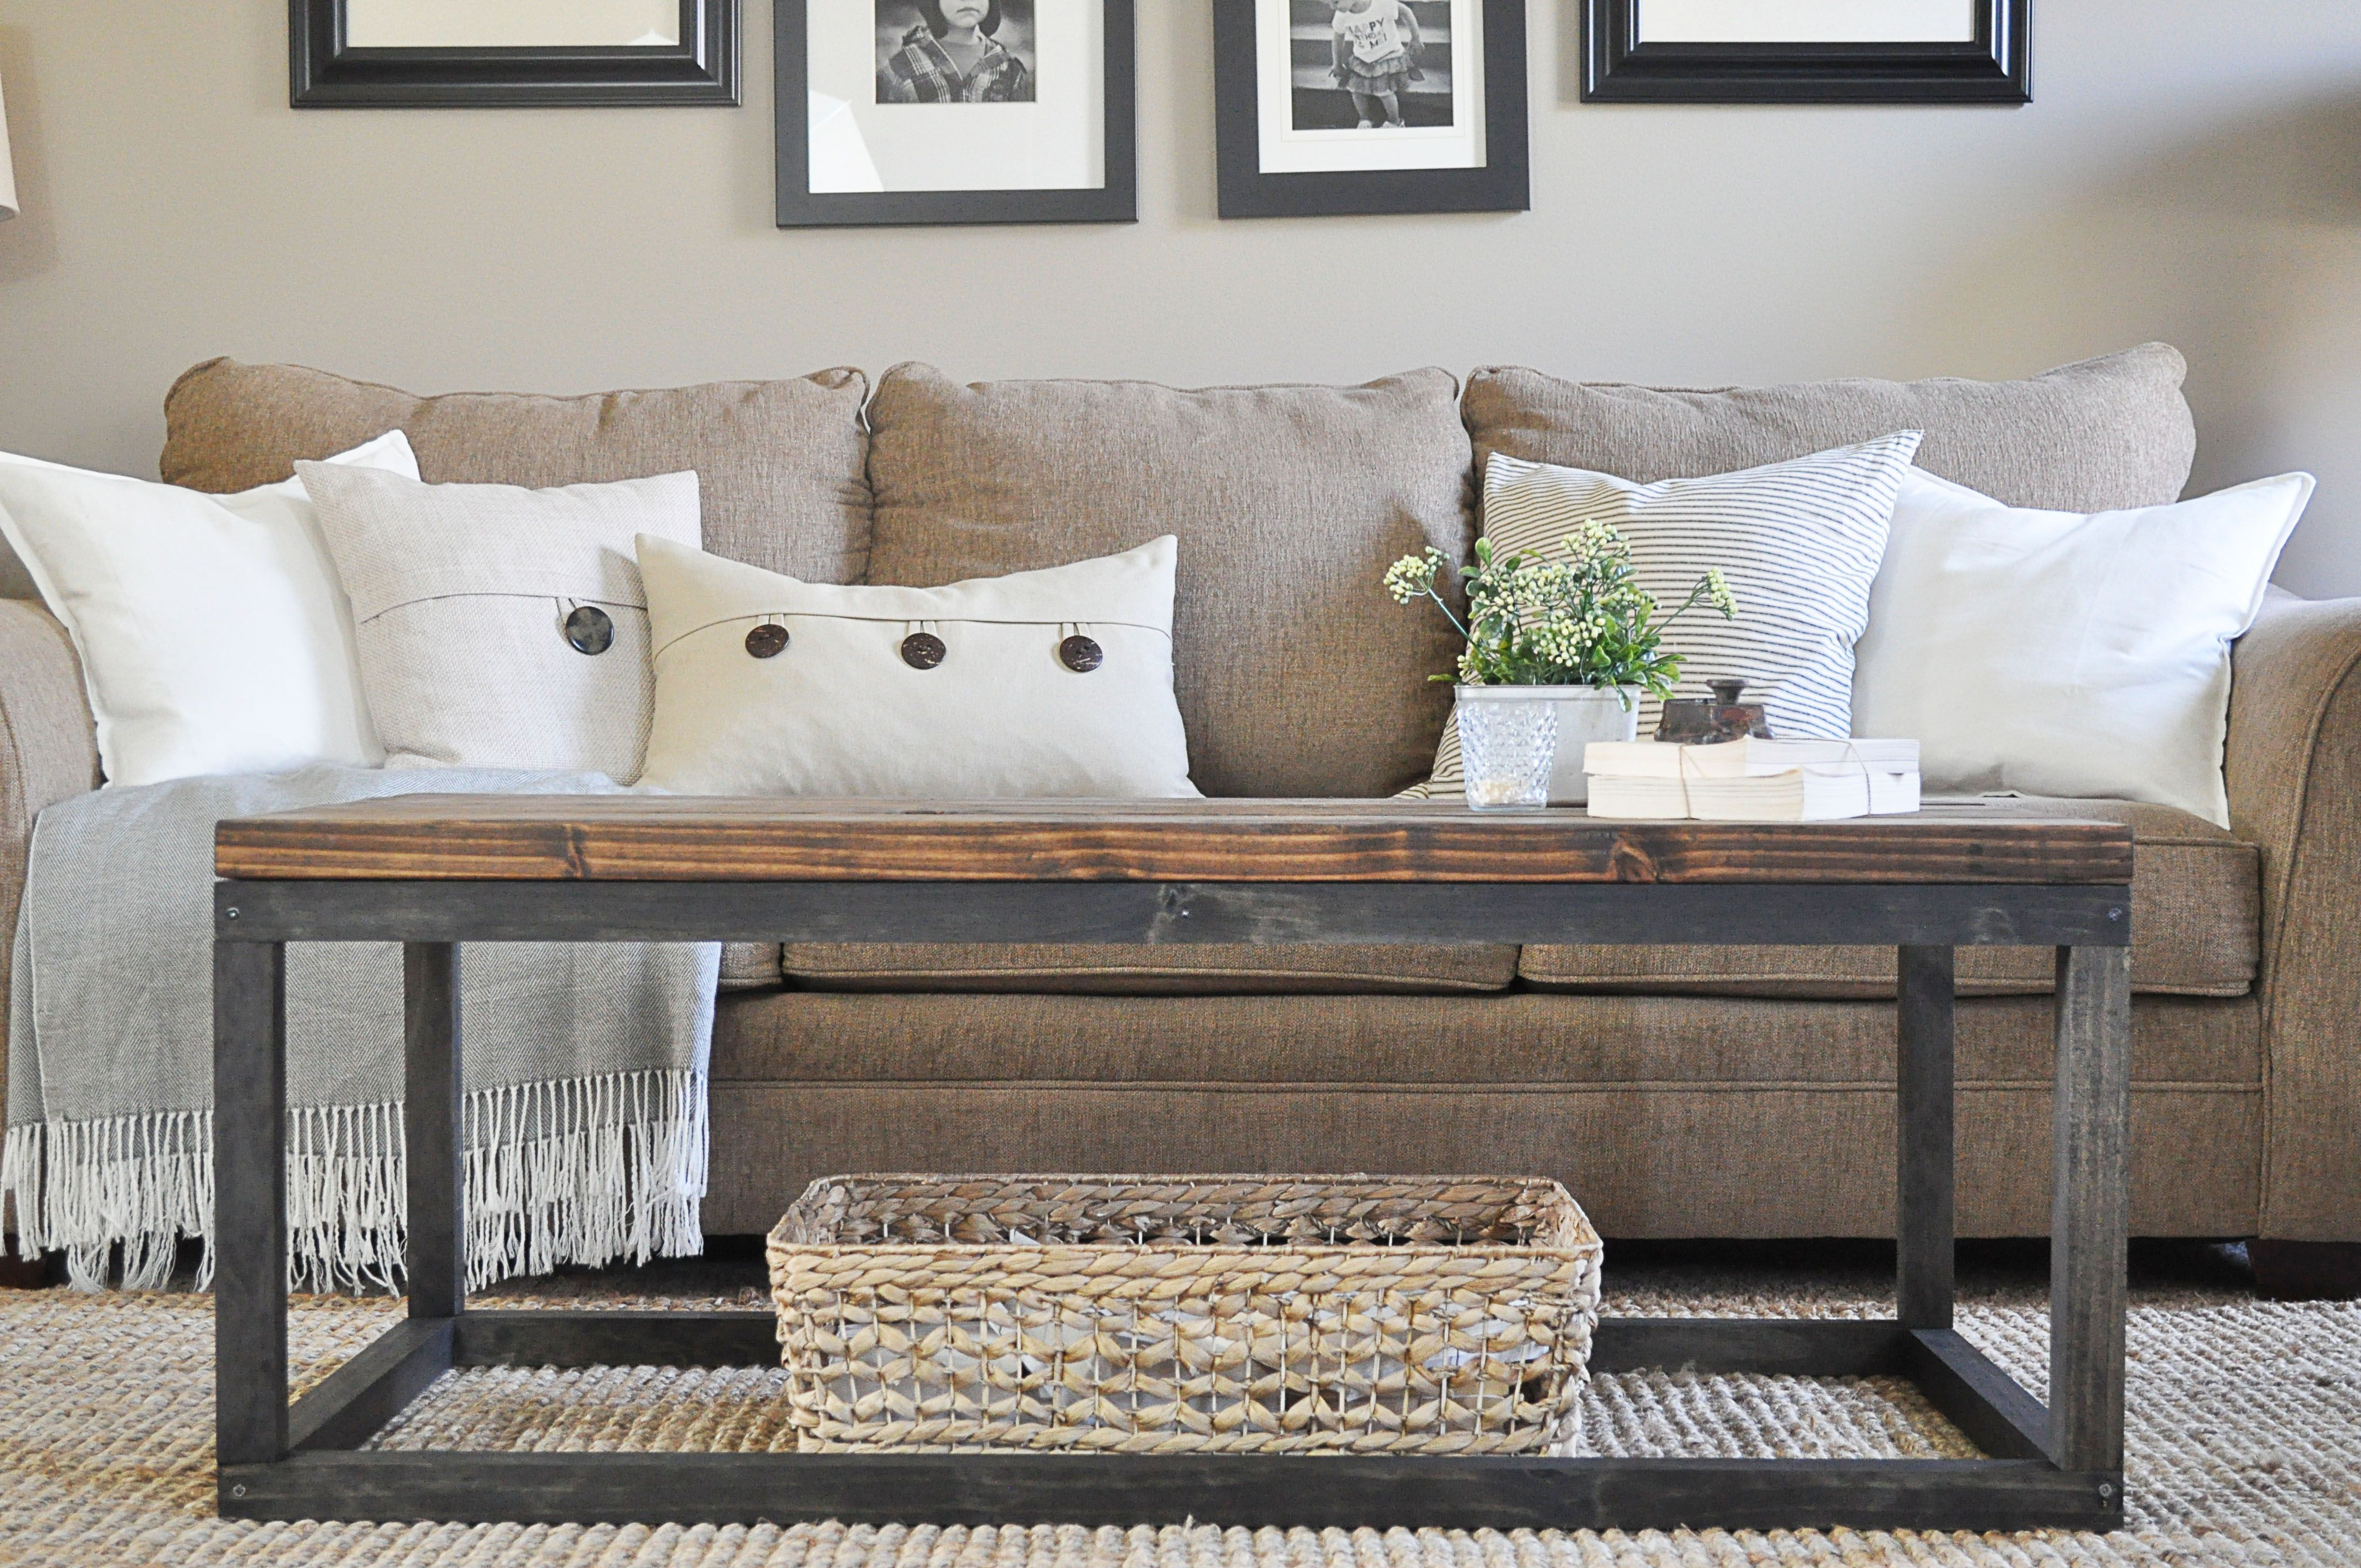 A wooden and metal coffee table in a living room